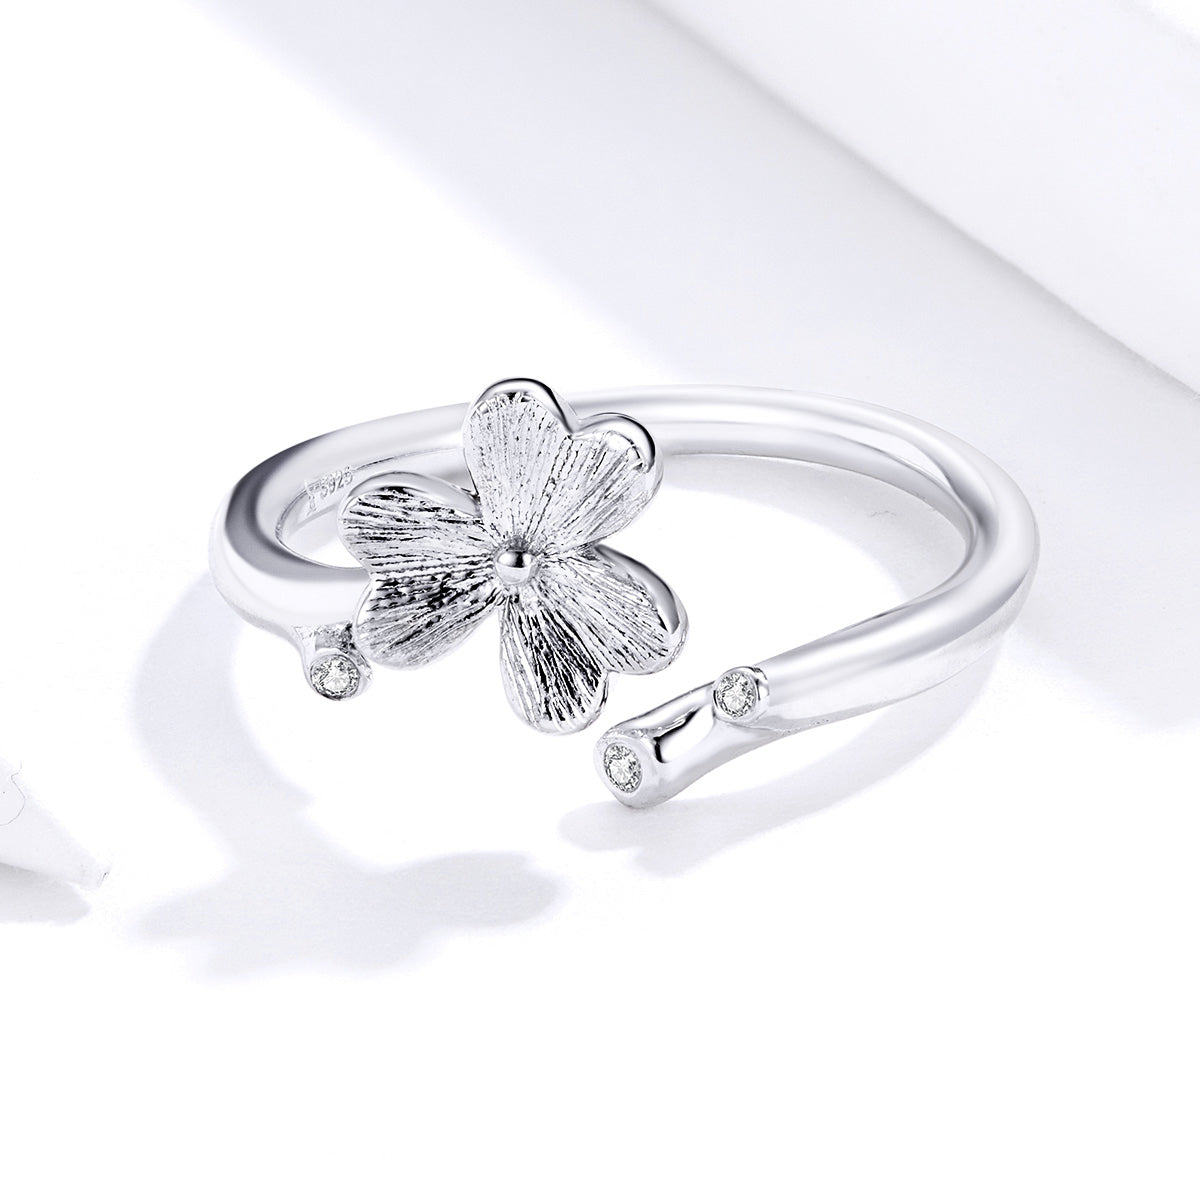 S925 sterling silver three leaf grass ring white gold plated zircon brushed ring